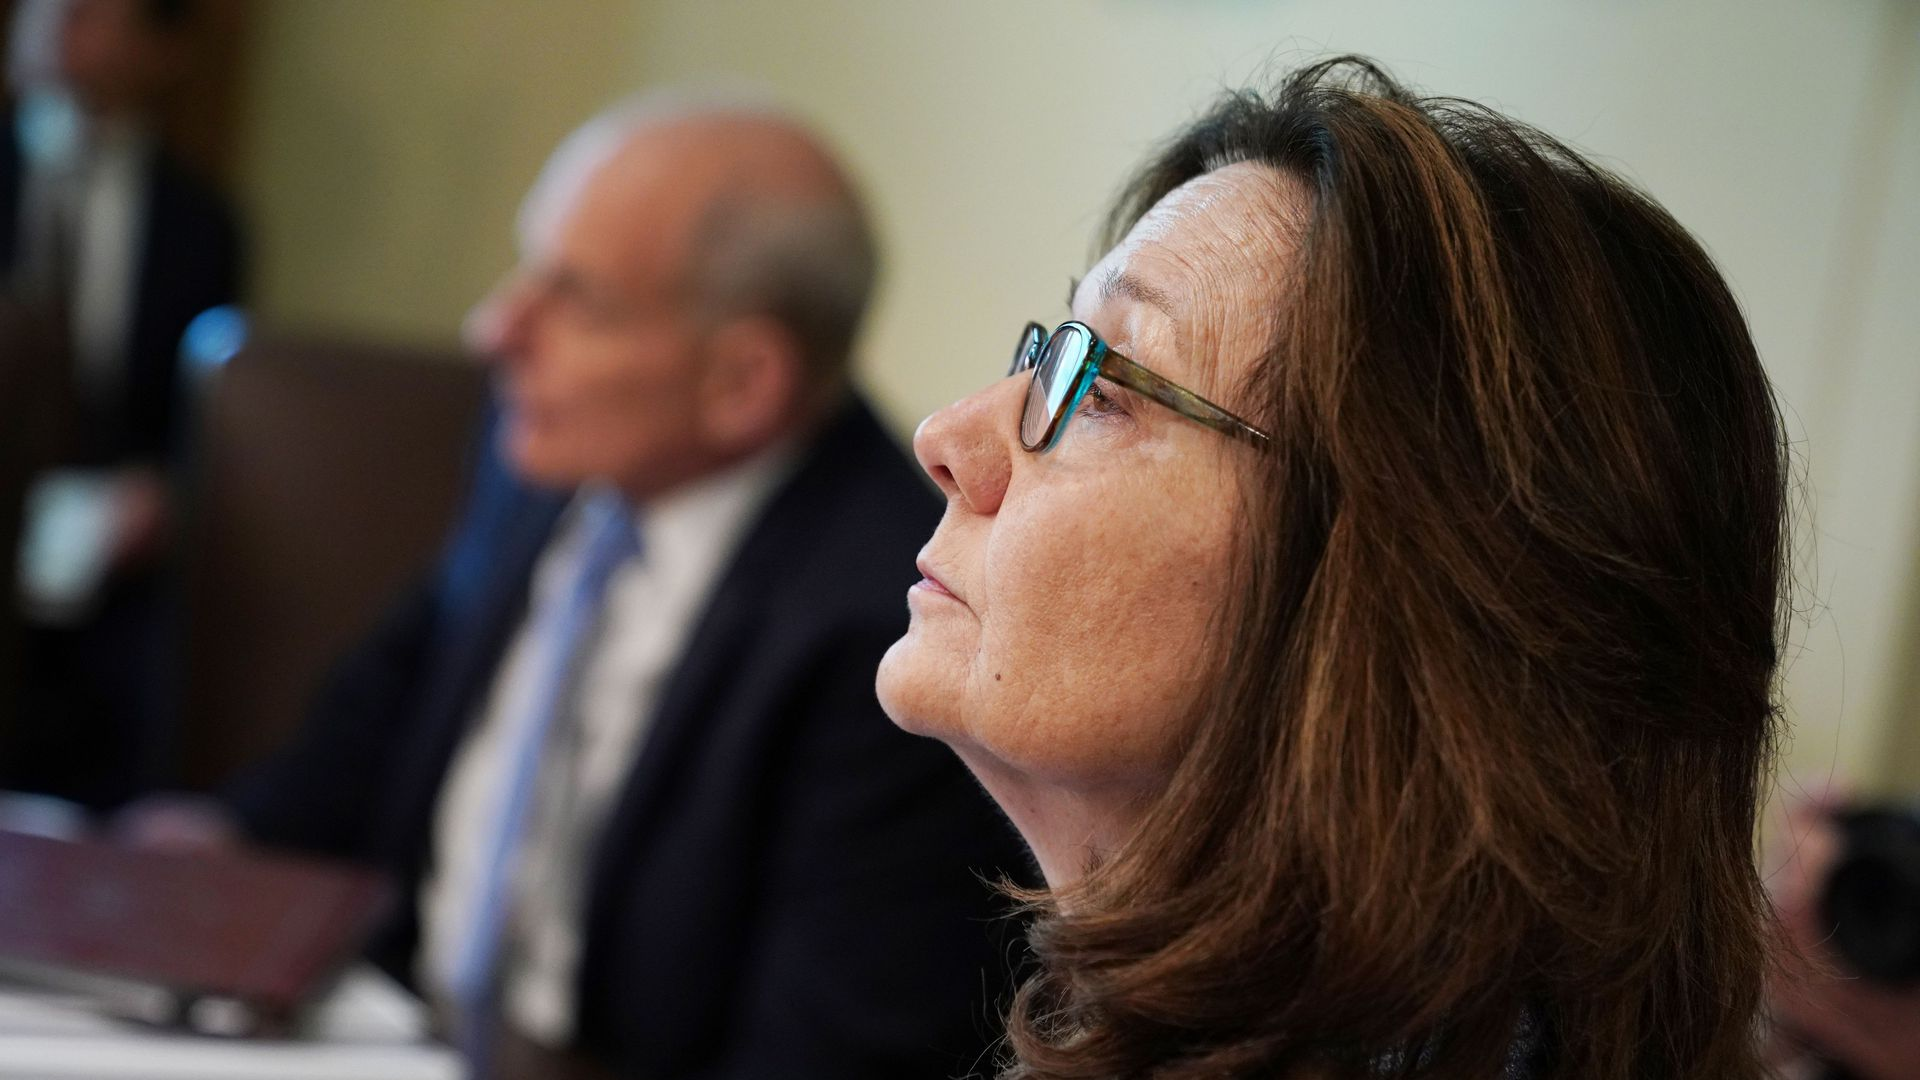 Gina Haspel sitting sideways from the camera.